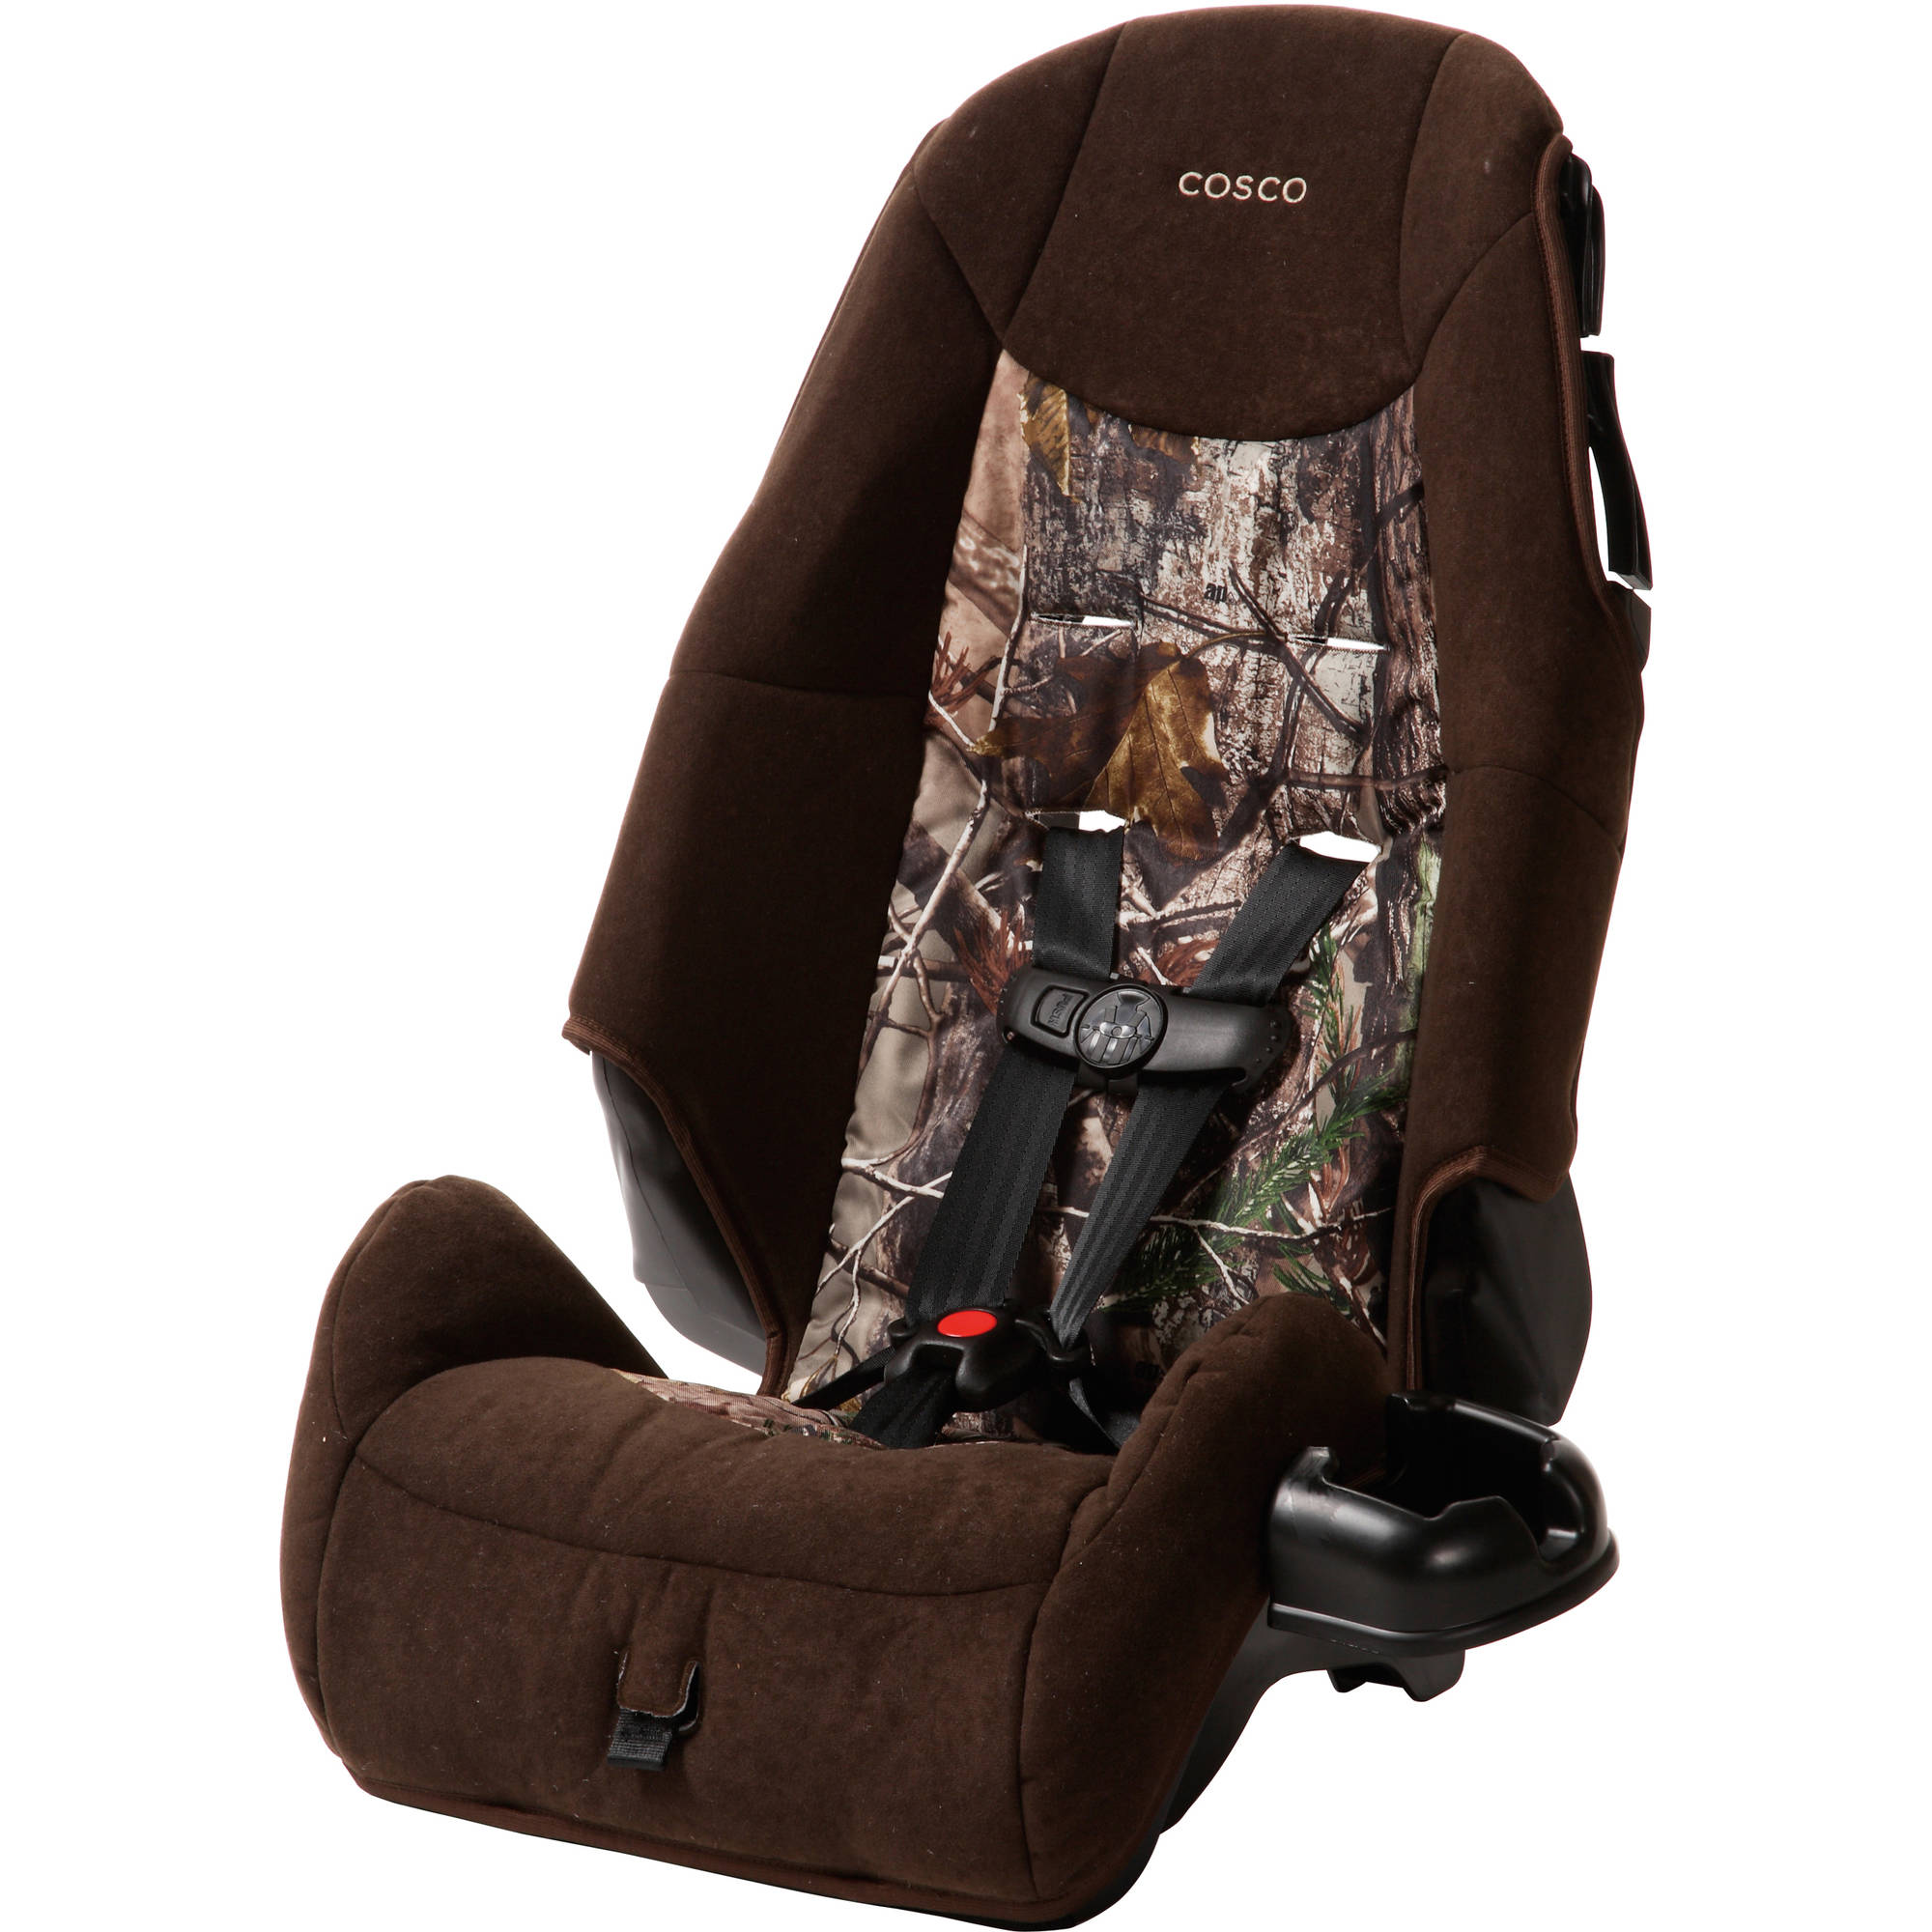 Cosco High-Back Booster Car Seat, Realtree